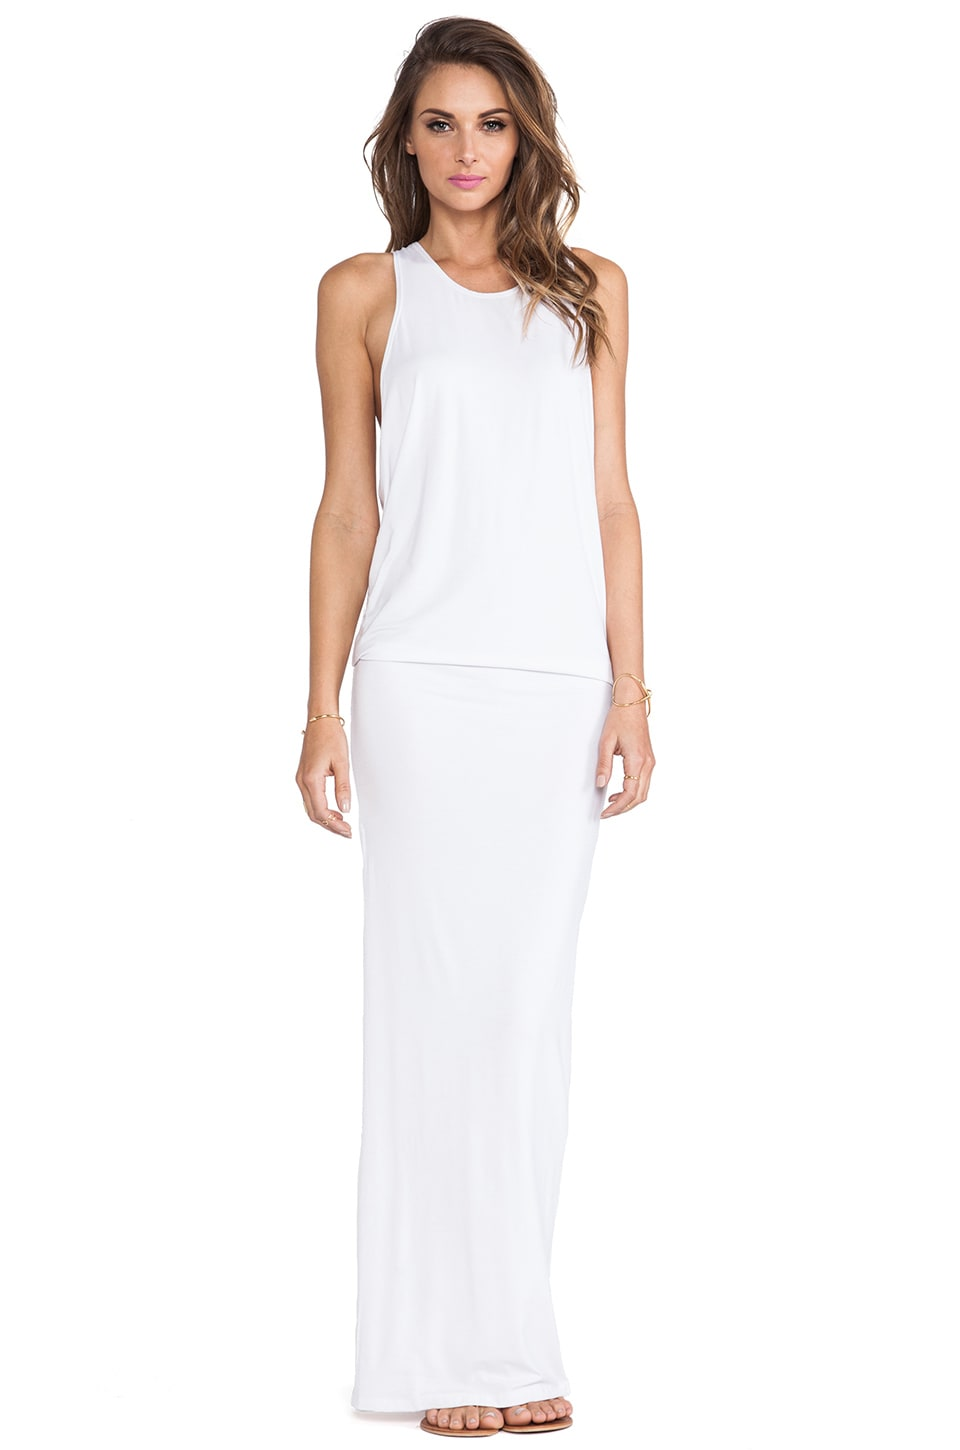 MIKOH Swimwear Mavericks High Neck Maxi Dress in Foam